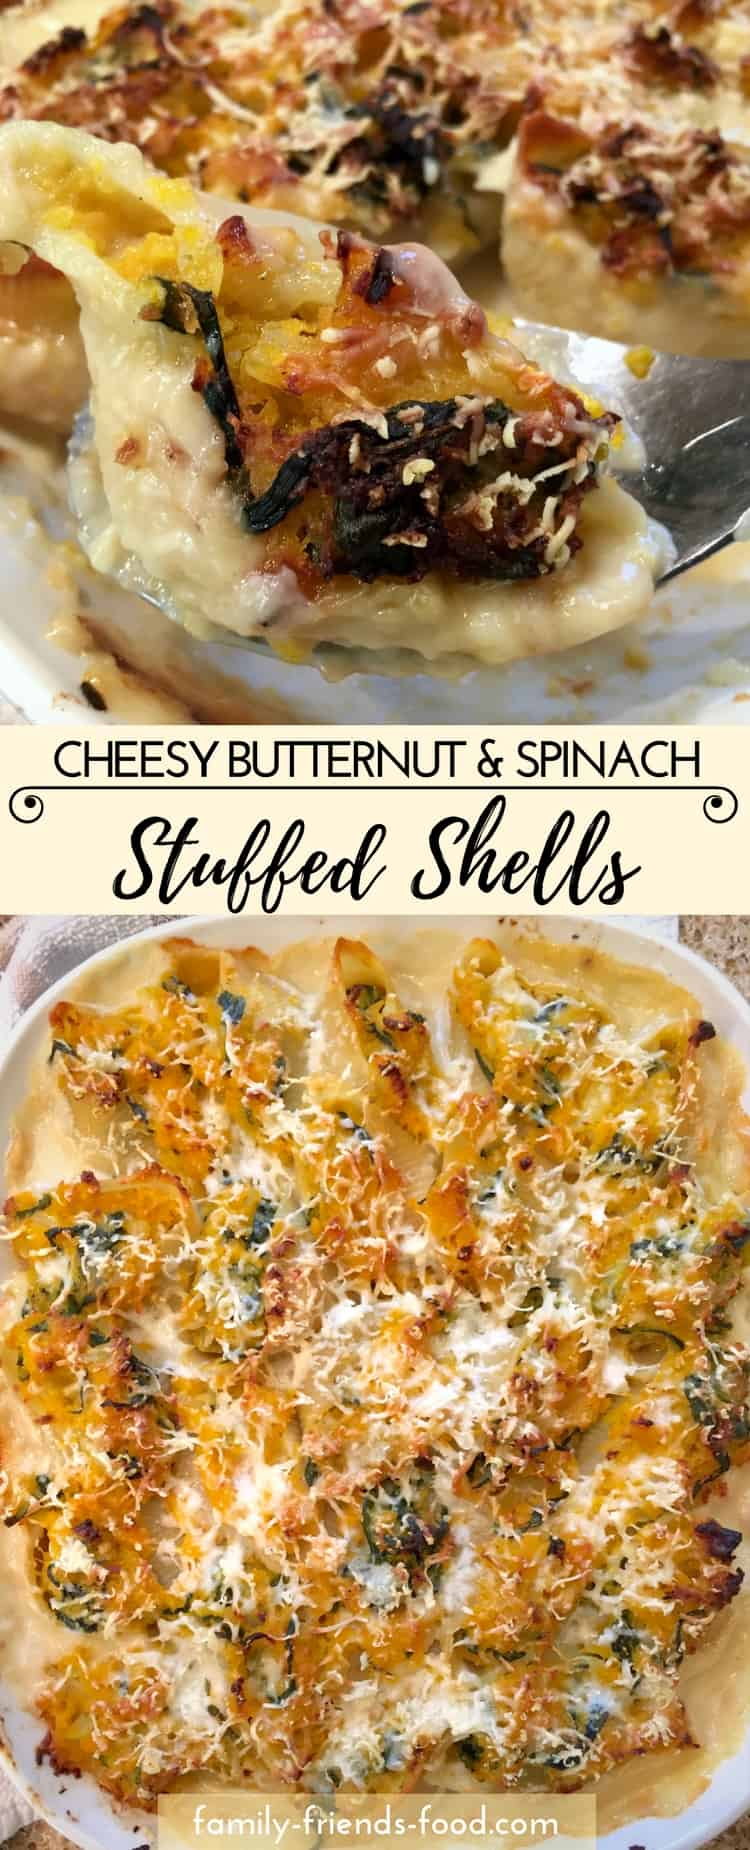 These gorgeous stuffed shells are conchiglioni filled with a delicious vegetarian squash & spinach mixture, nestled in a cheesy sauce & topped with more cheese before baking to crispy perfection.